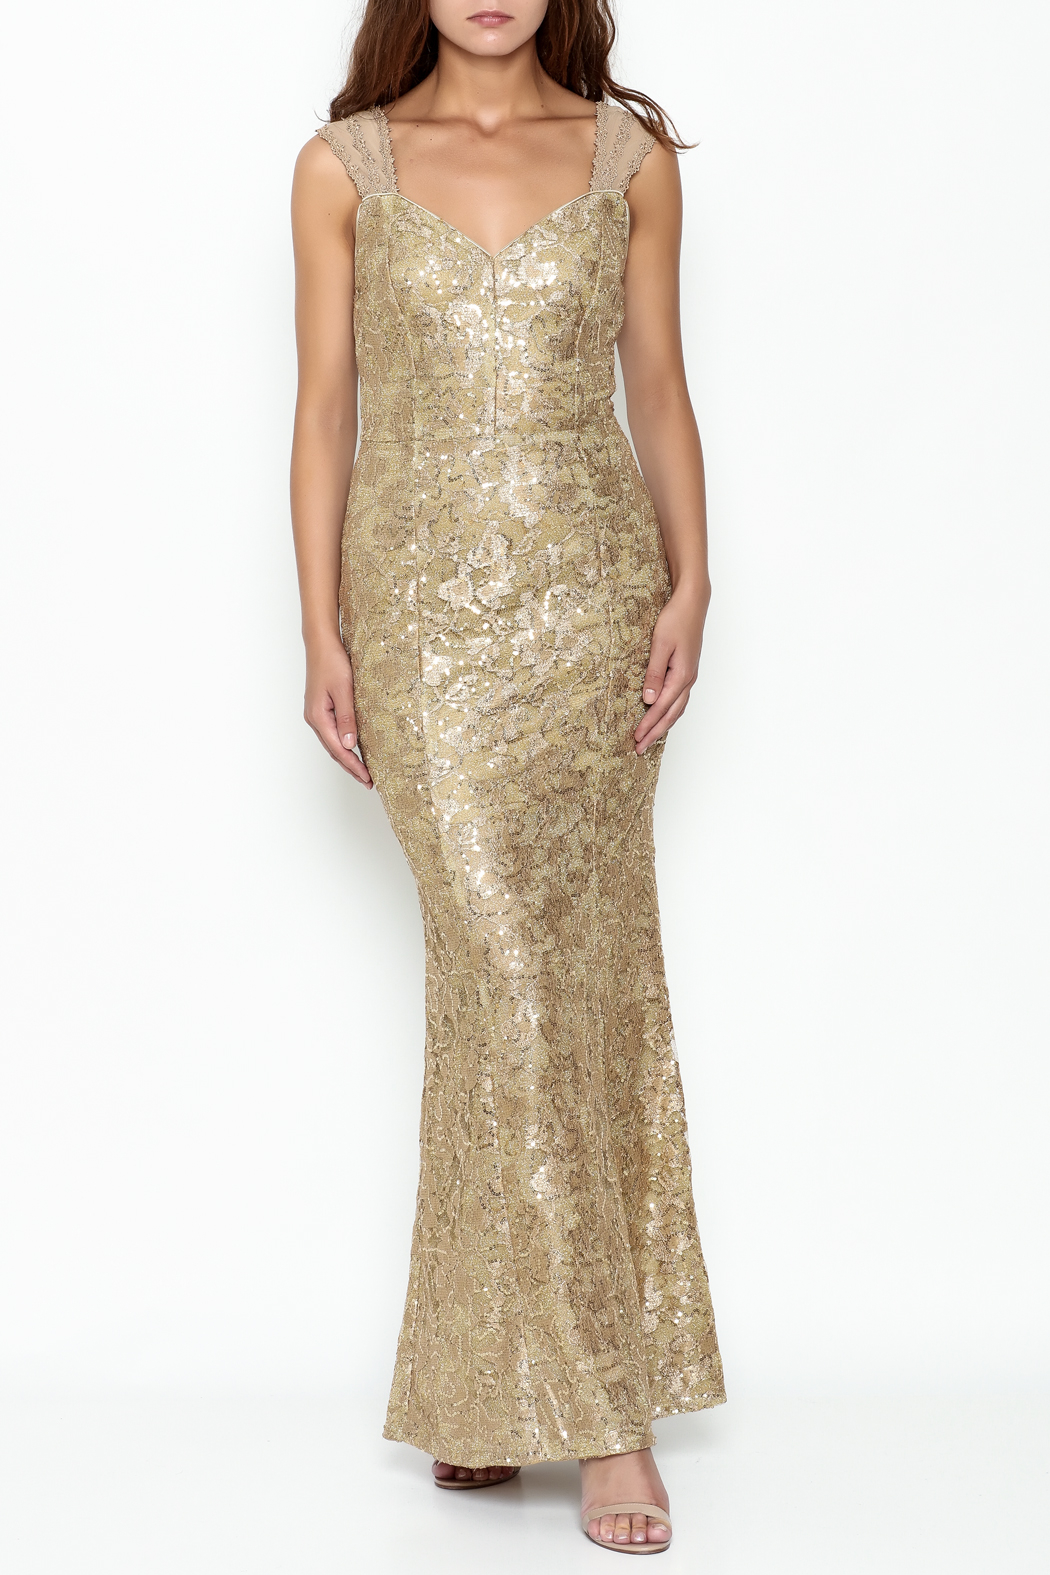 Nikibiki Gold Lace Dress - Main Image